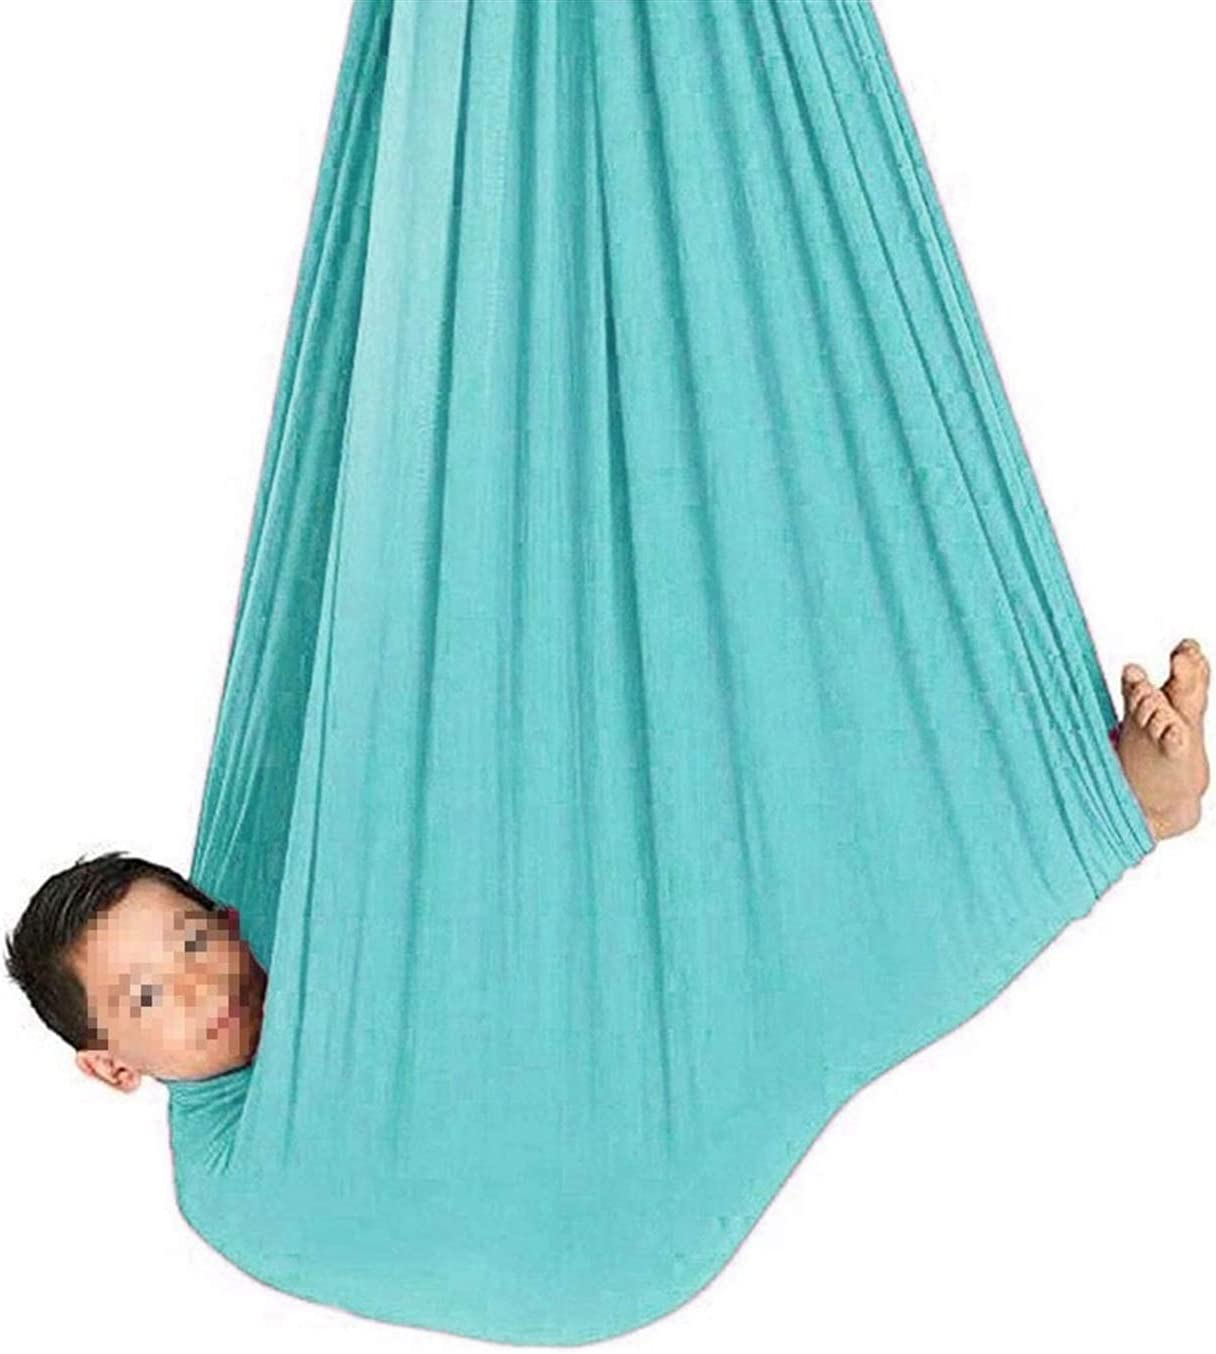 New color lowest price YUDIZWS Sensory Swing with Autism Aspergers ADHD an Ideal Cuddle